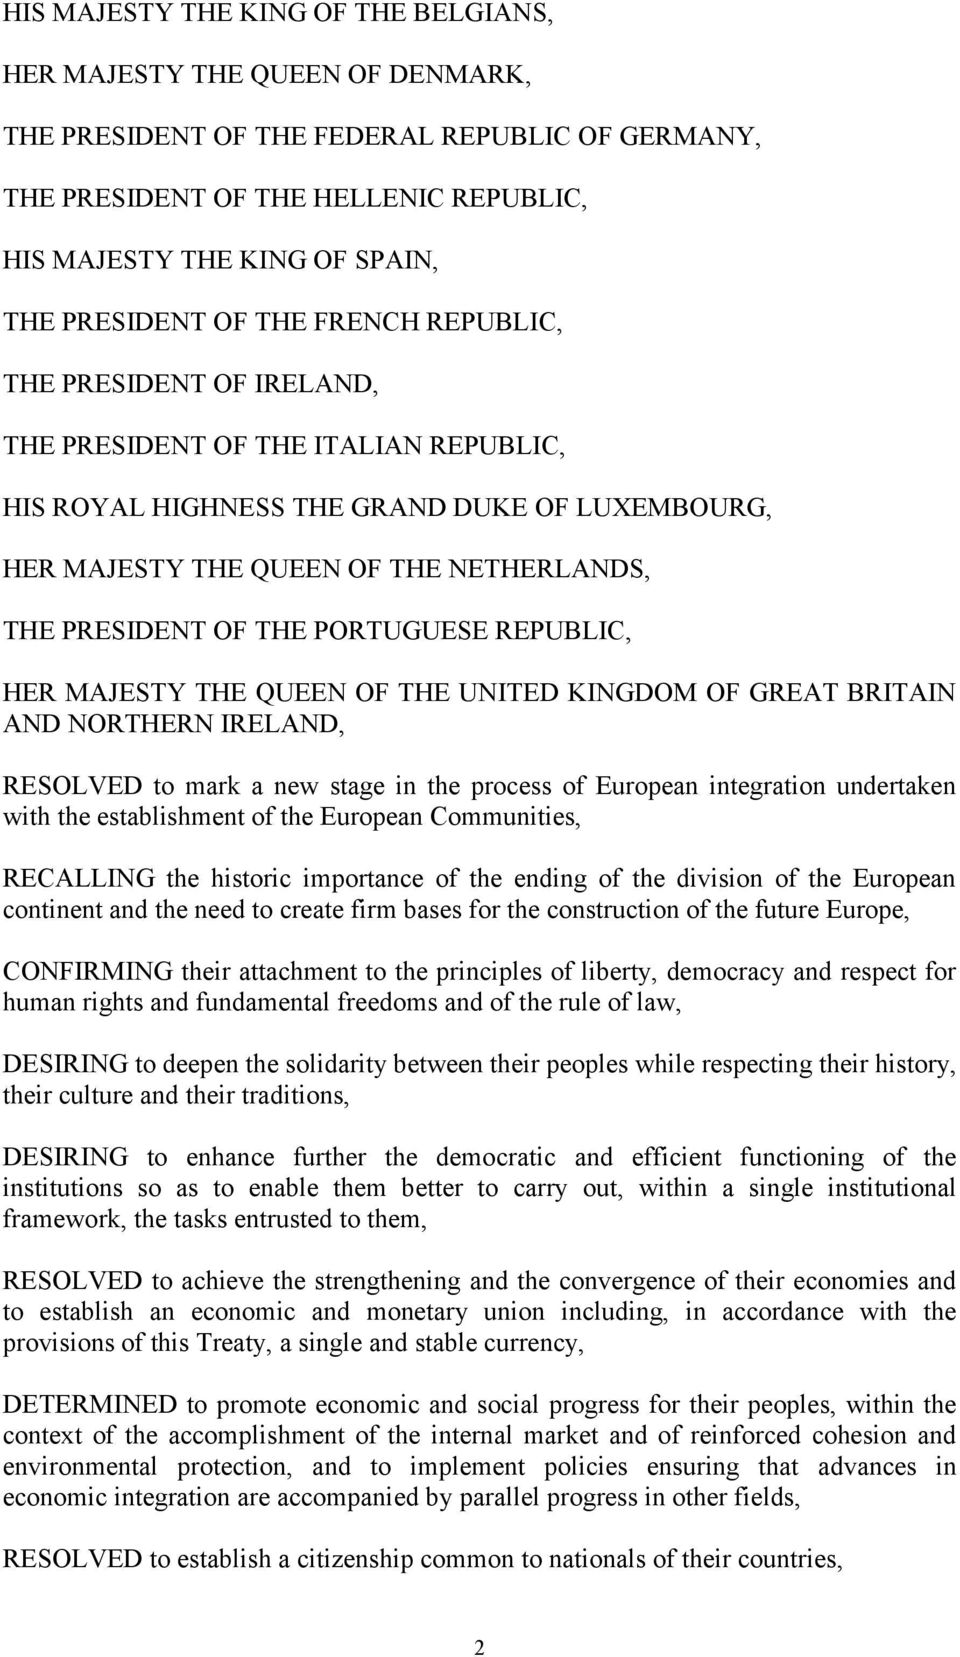 PRESIDENT OF THE PORTUGUESE REPUBLIC, HER MAJESTY THE QUEEN OF THE UNITED KINGDOM OF GREAT BRITAIN AND NORTHERN IRELAND, RESOLVED to mark a new stage in the process of European integration undertaken